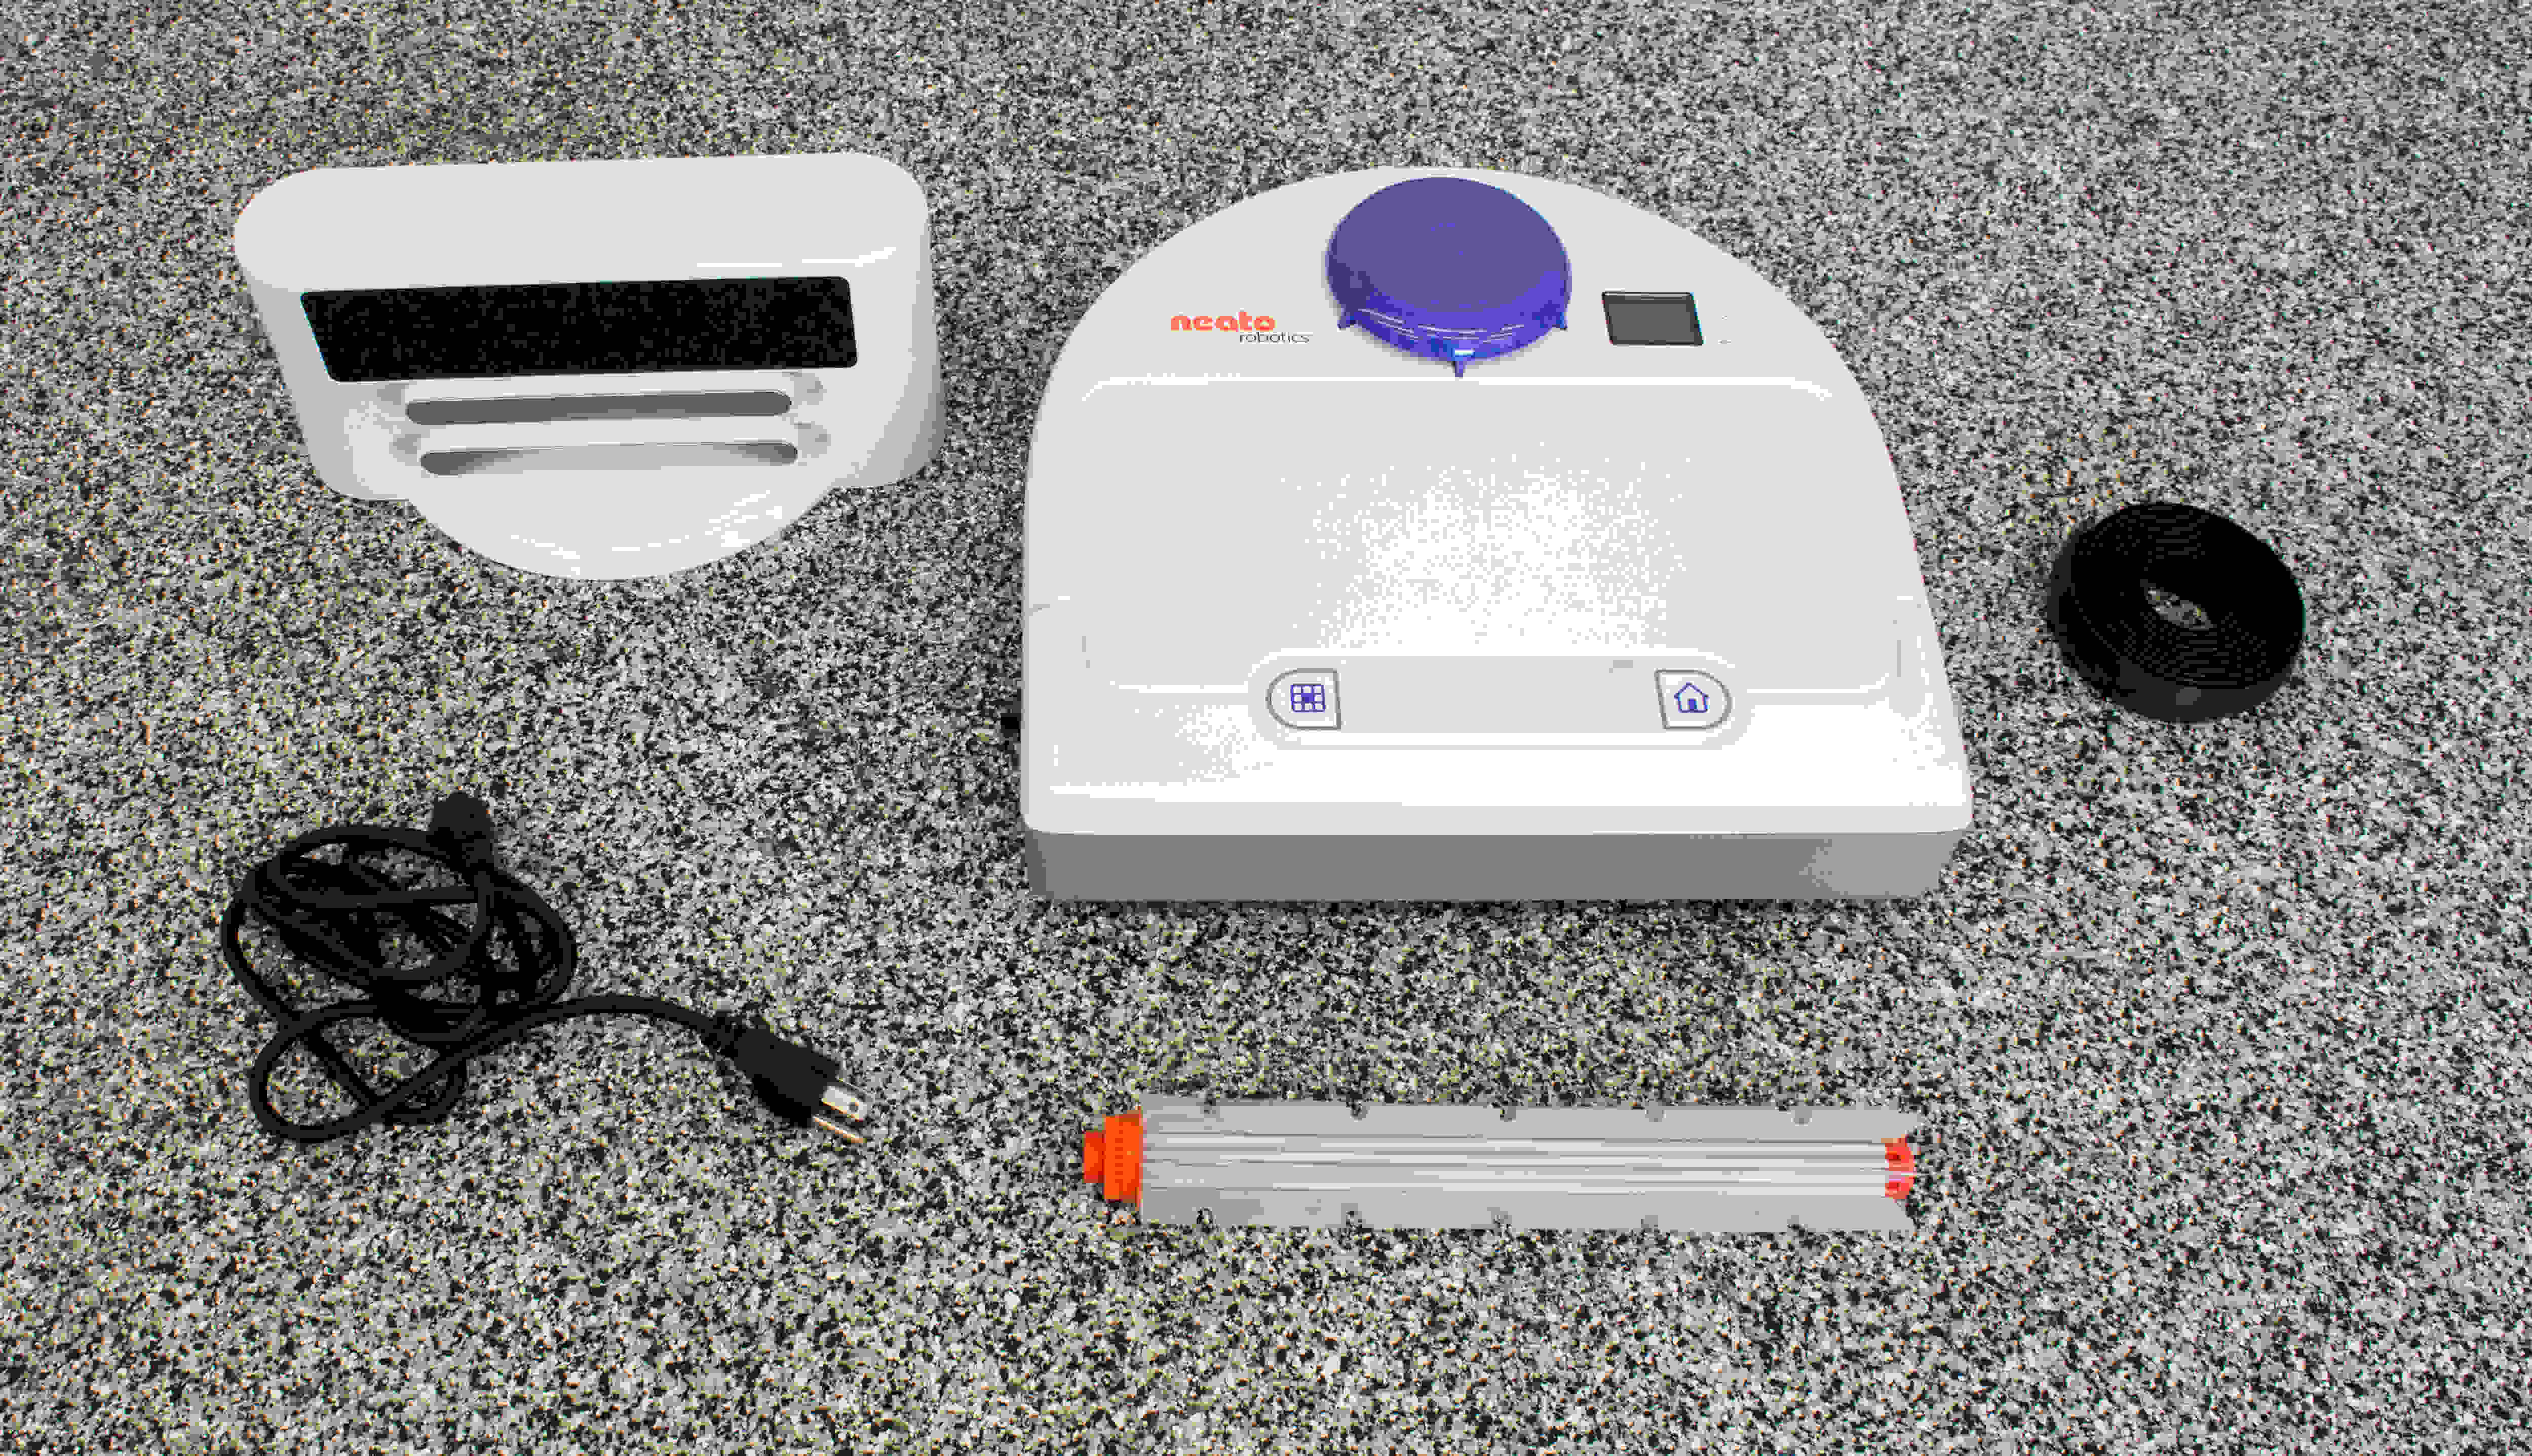 The Botvac 80 has fewer accessories than other robot vacuums.